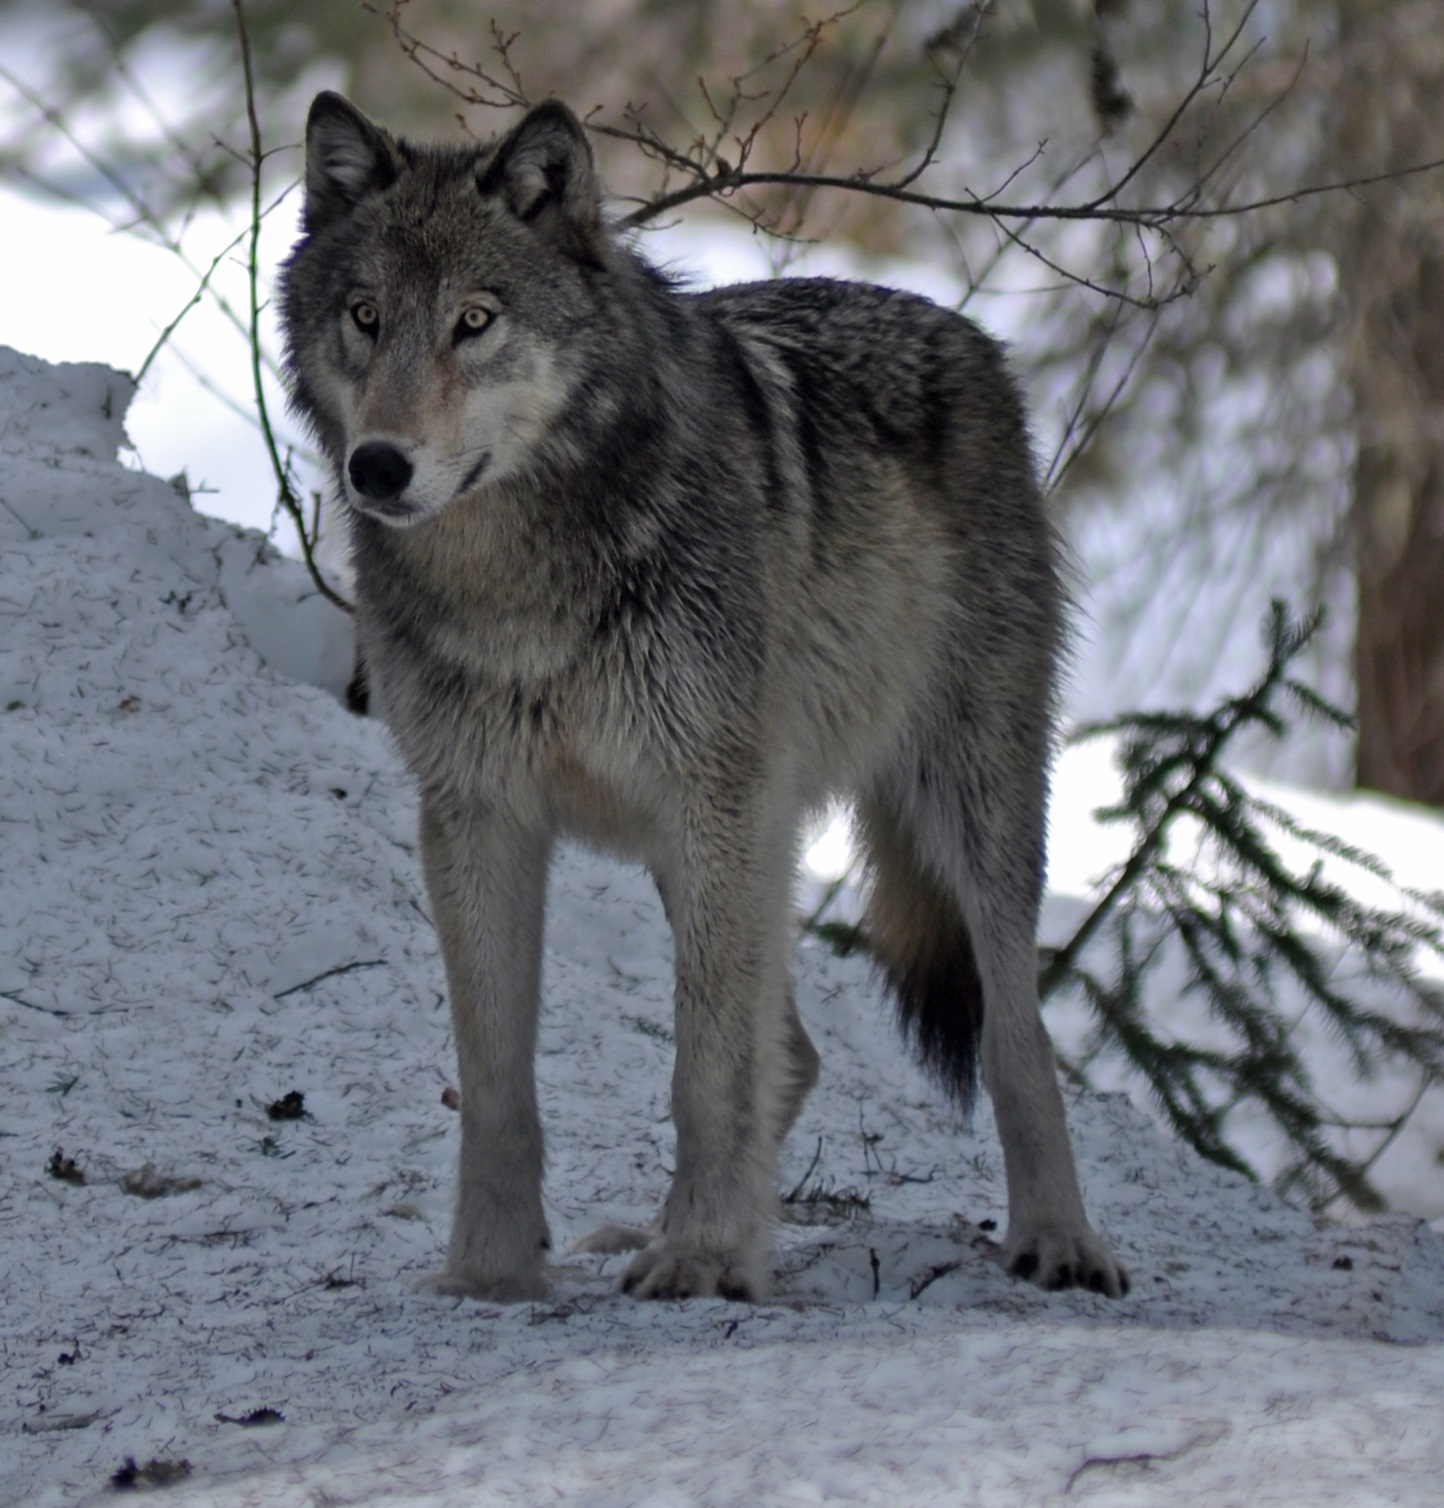 https://upload.wikimedia.org/wikipedia/commons/a/ad/4-10-12-wolf-1_%28cropped%29.jpg